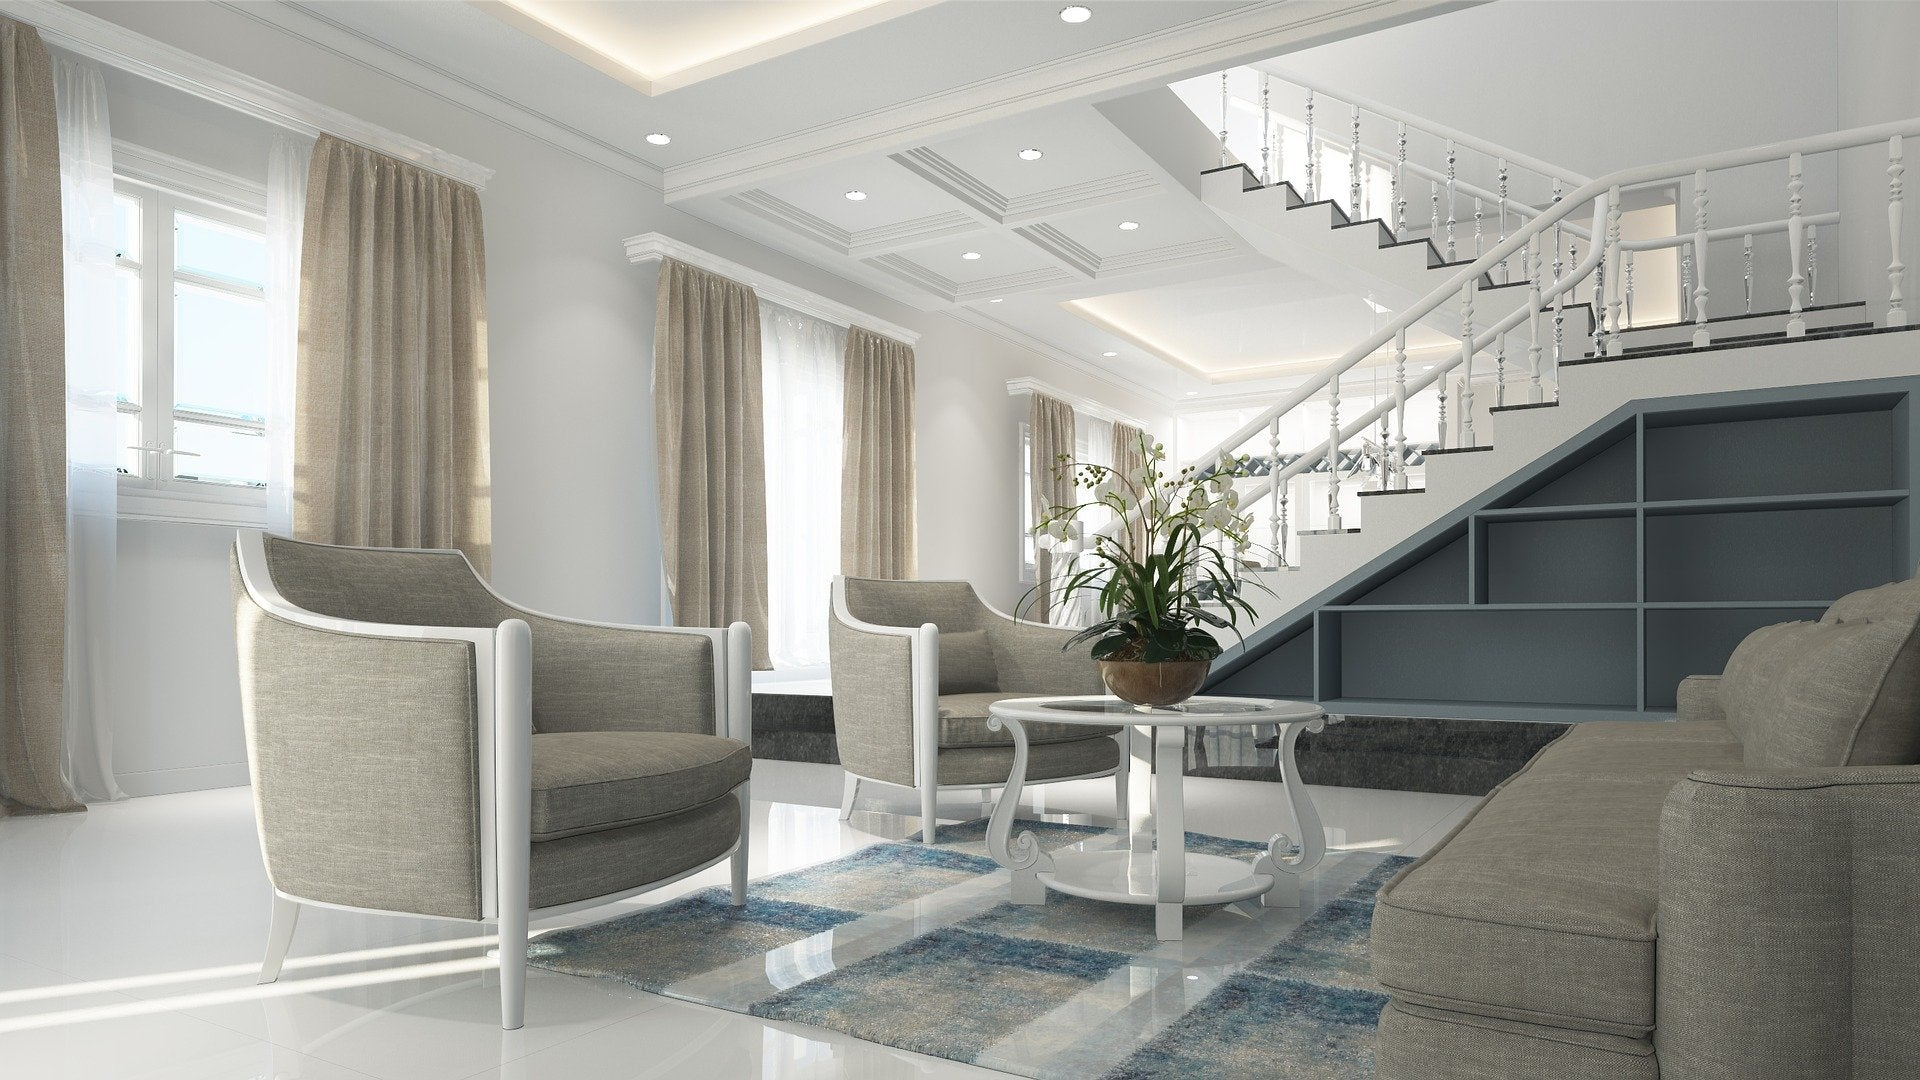 Living room interior design with lots of space between furniture.